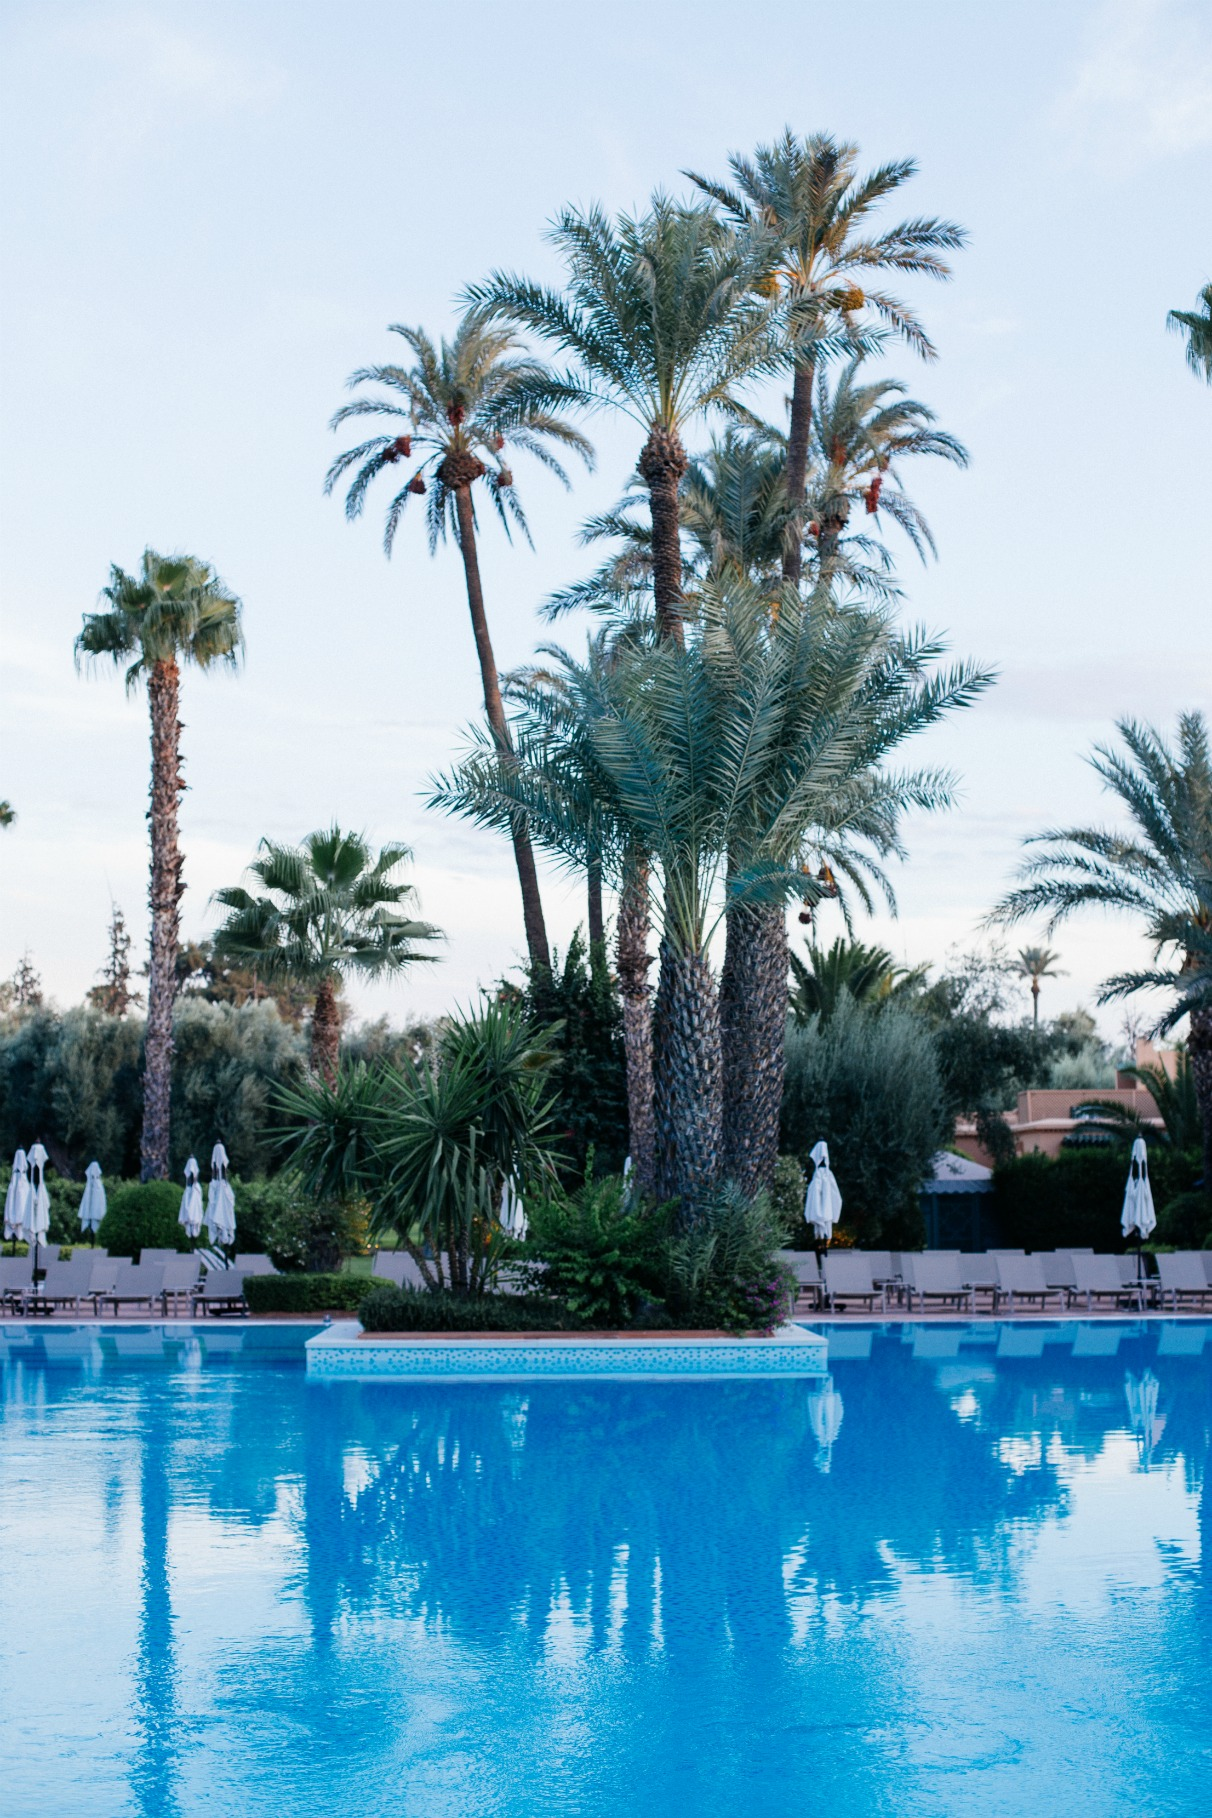 palace-in-marrakesh-morocco-la-mamounia-5-star-luxury-hotel-spa-0199